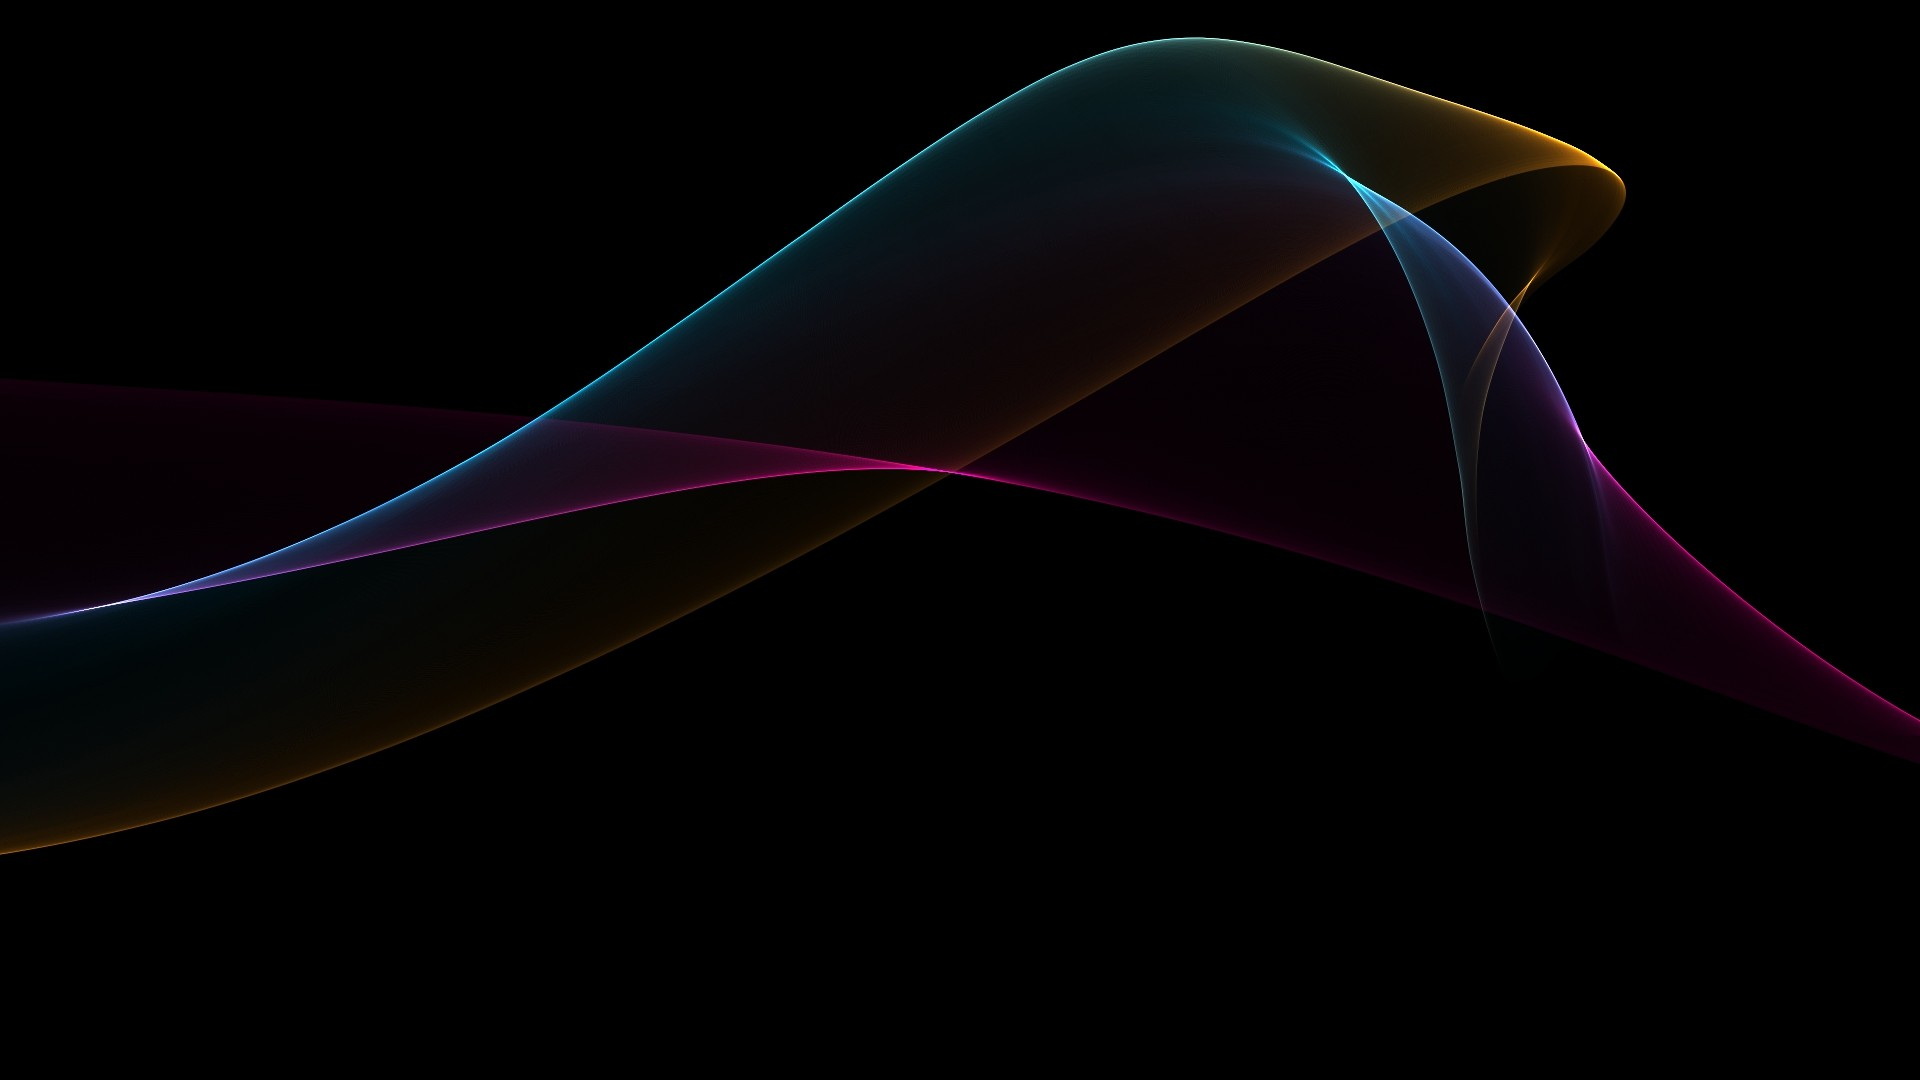 Hd Wallpapers Abstract Black 3 Background Wallpaper ...